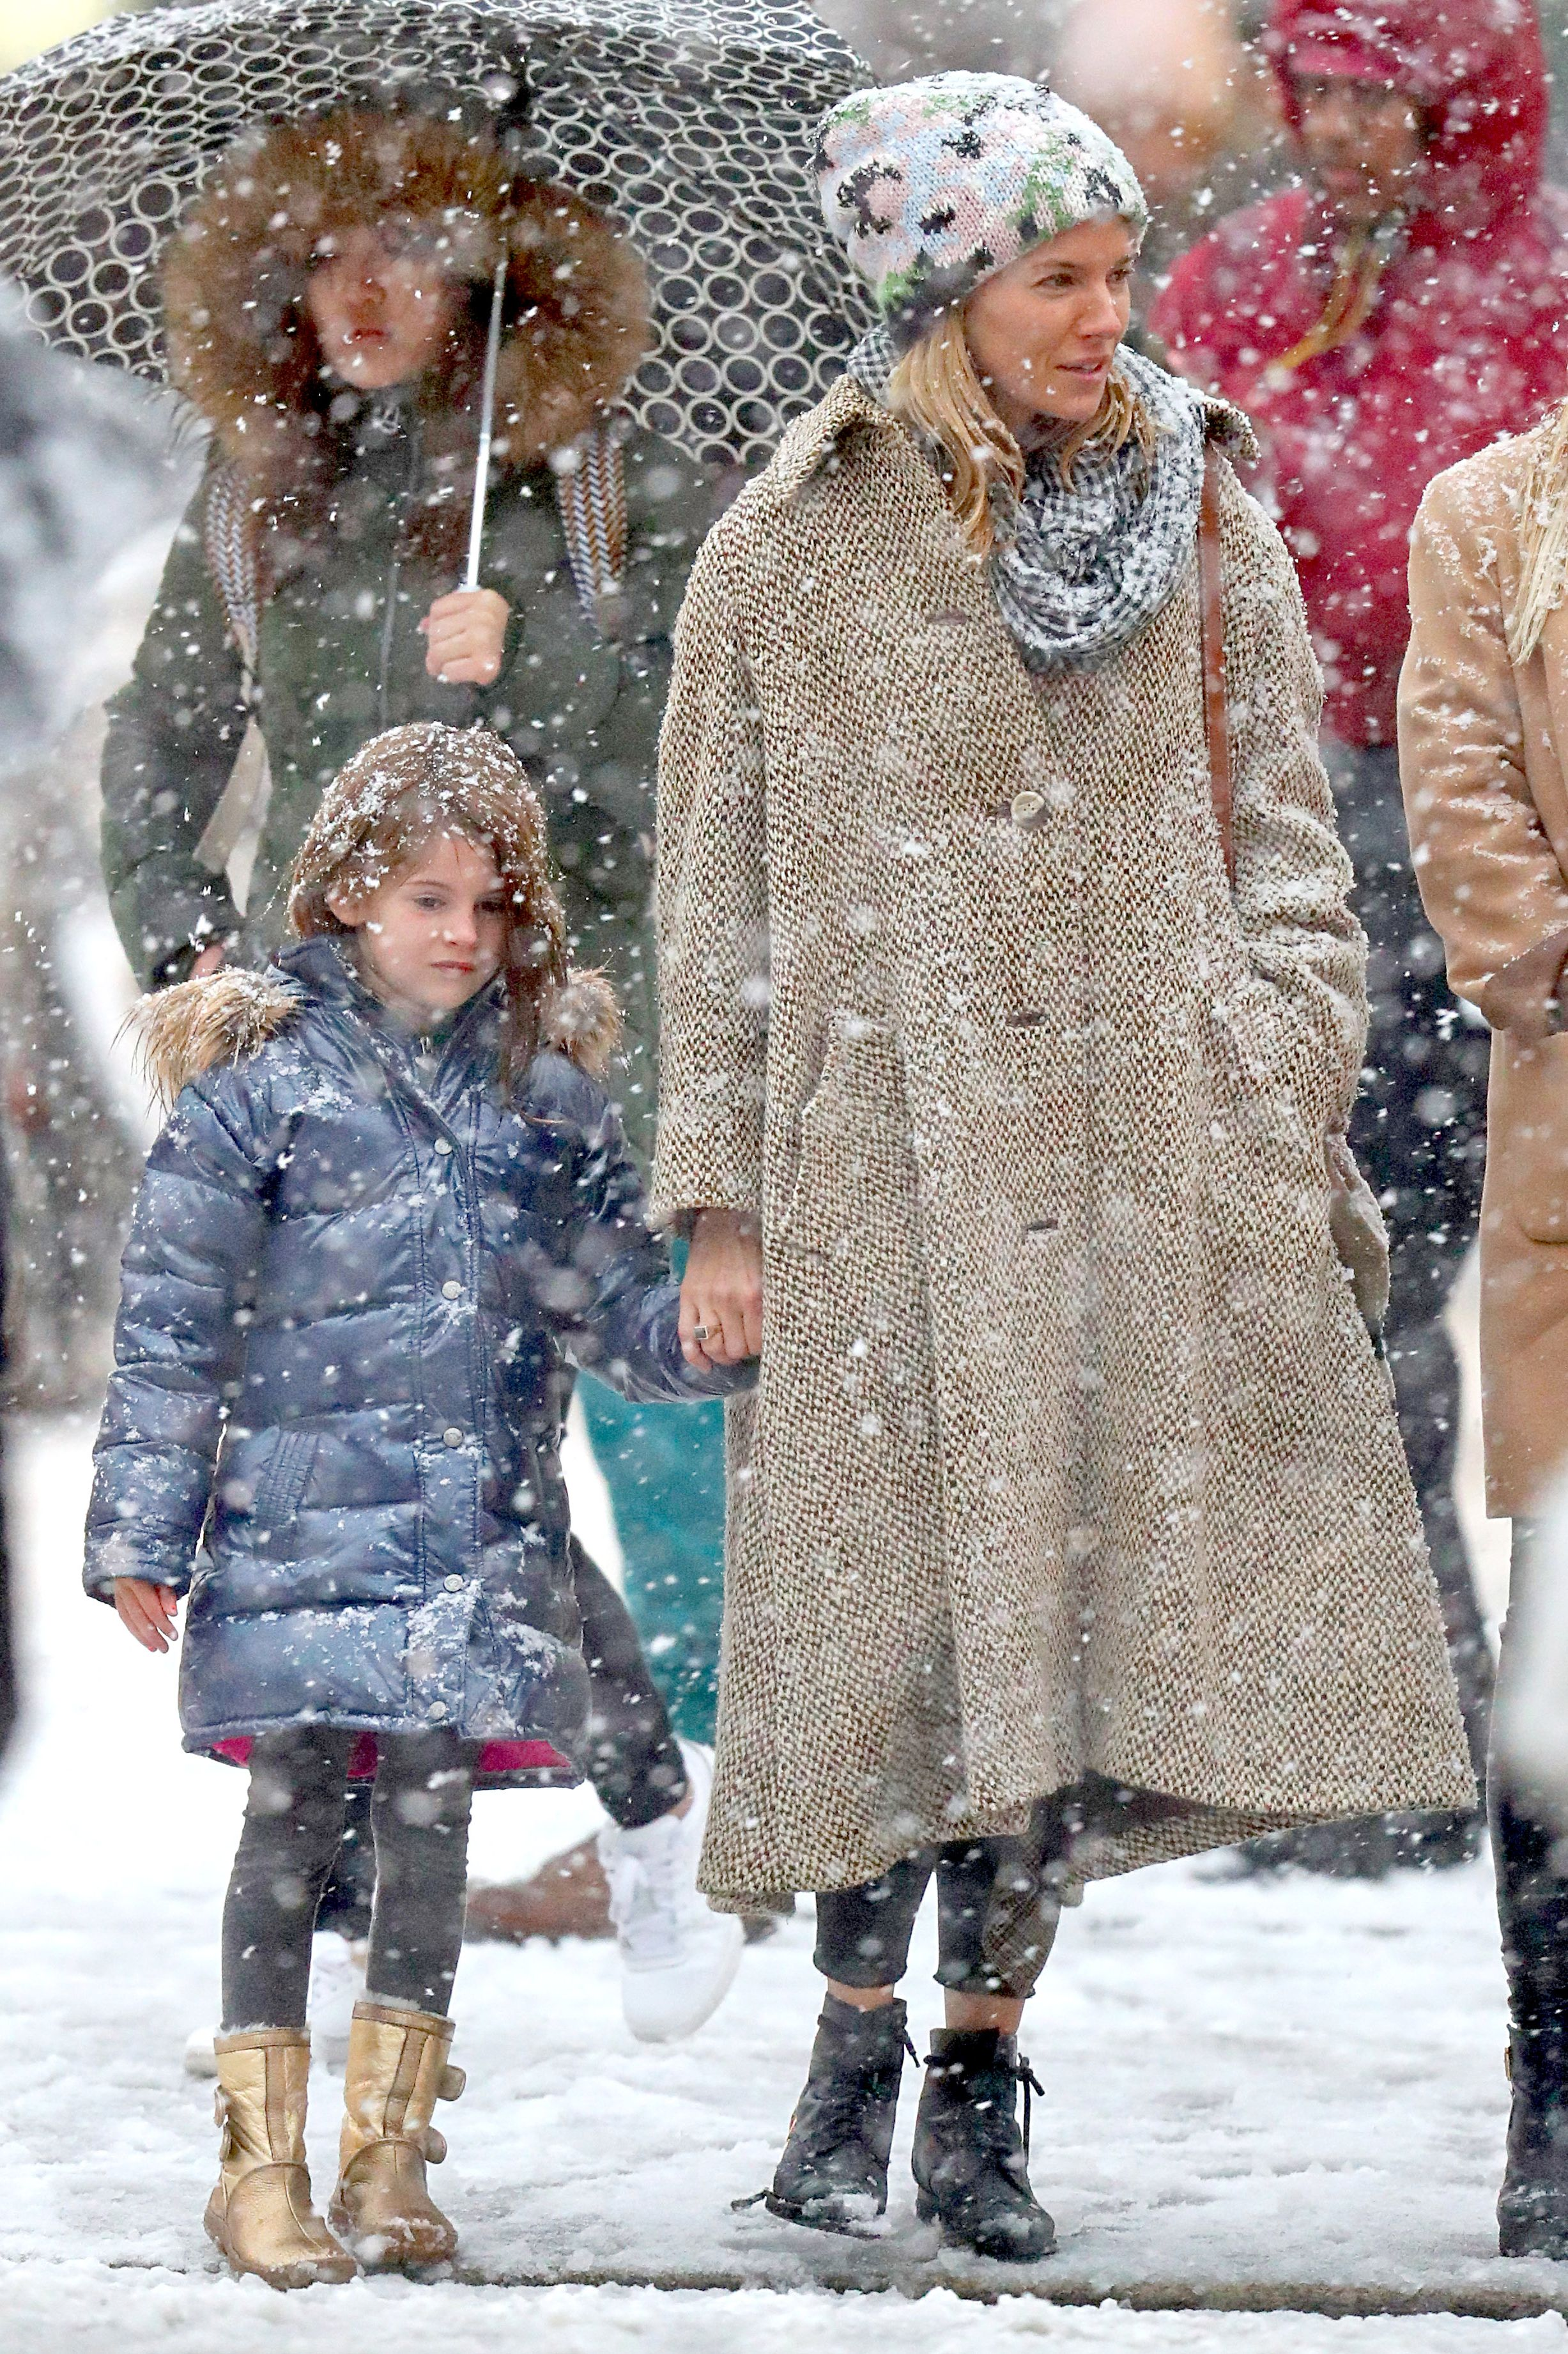 EXCLUSIVE: Sienna Miller is Spotted Stepping Out in a Snowstorm in New York City.